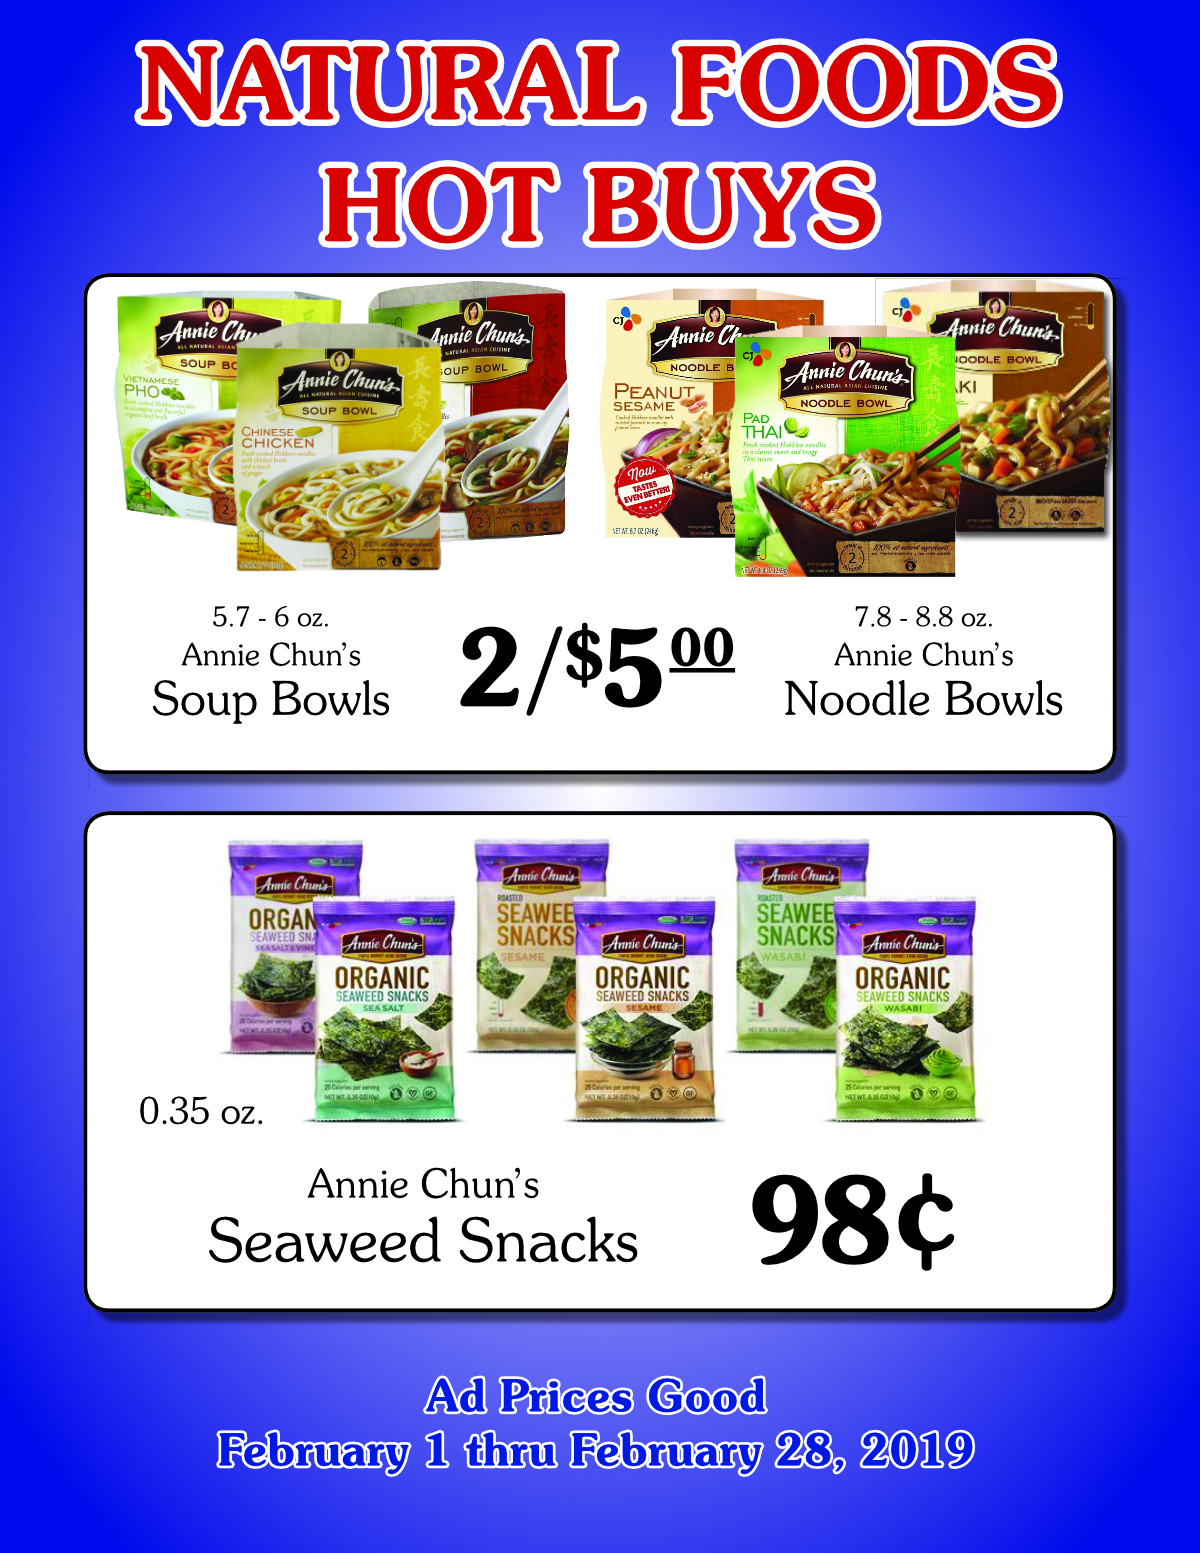 Natural Foods Hot Buy